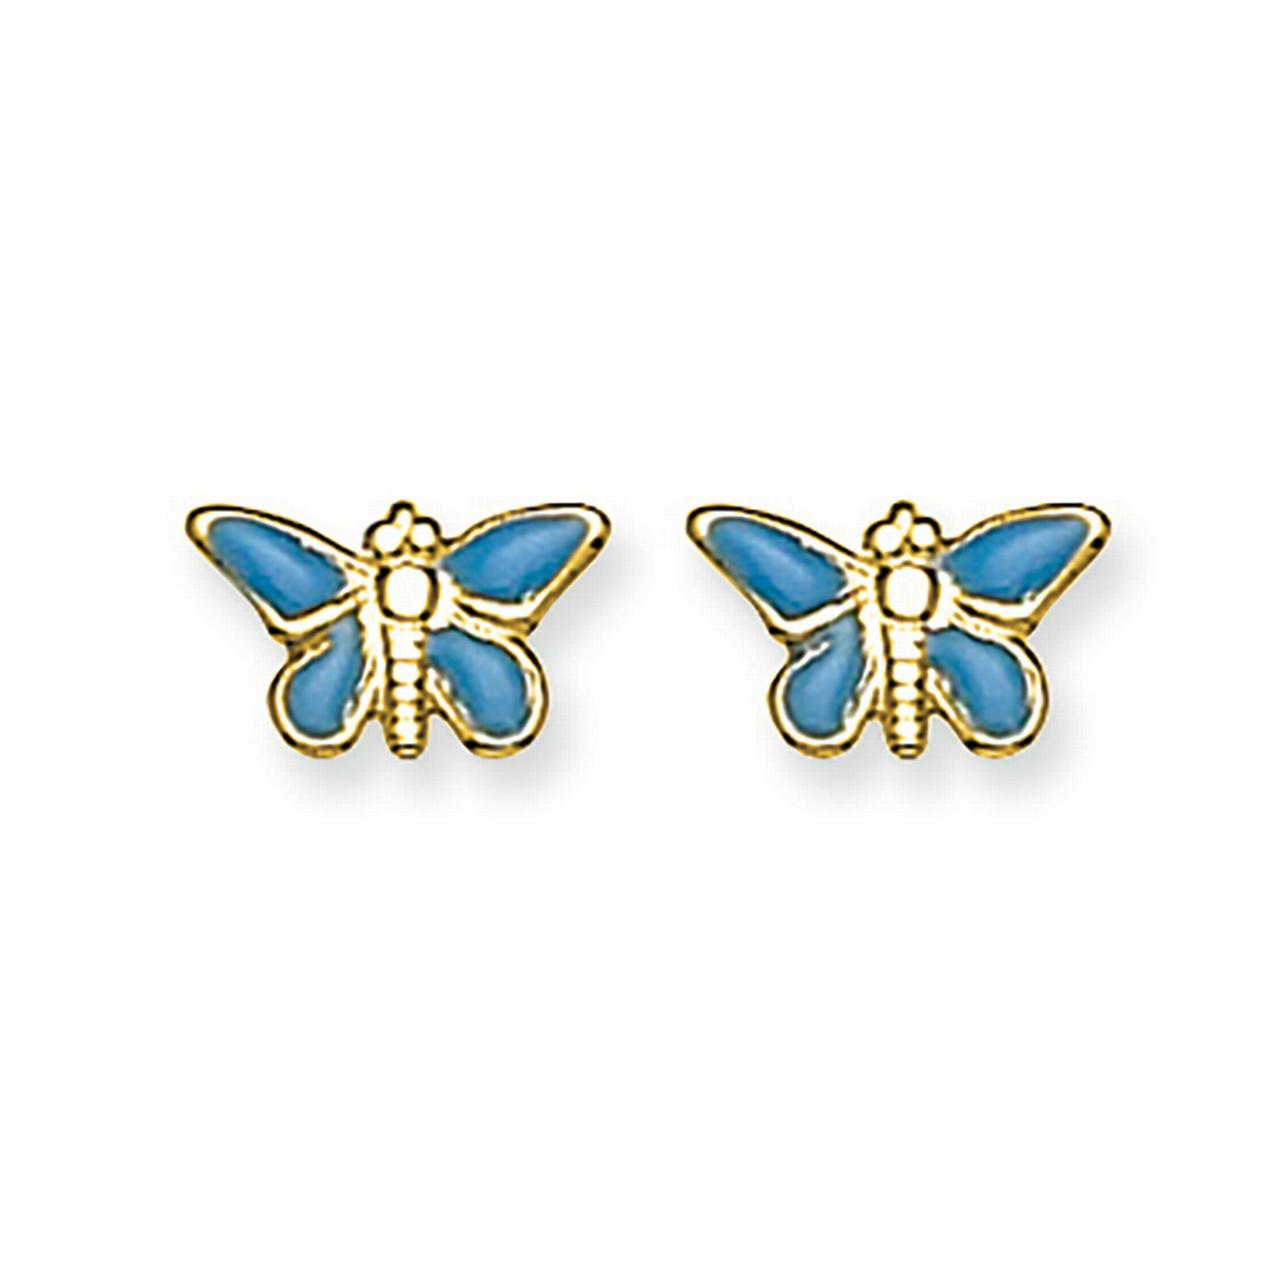 14K Yellow Gold Childrens Inverness 6 MM Epoxy Fill Blue Butterfly Stud Earrings